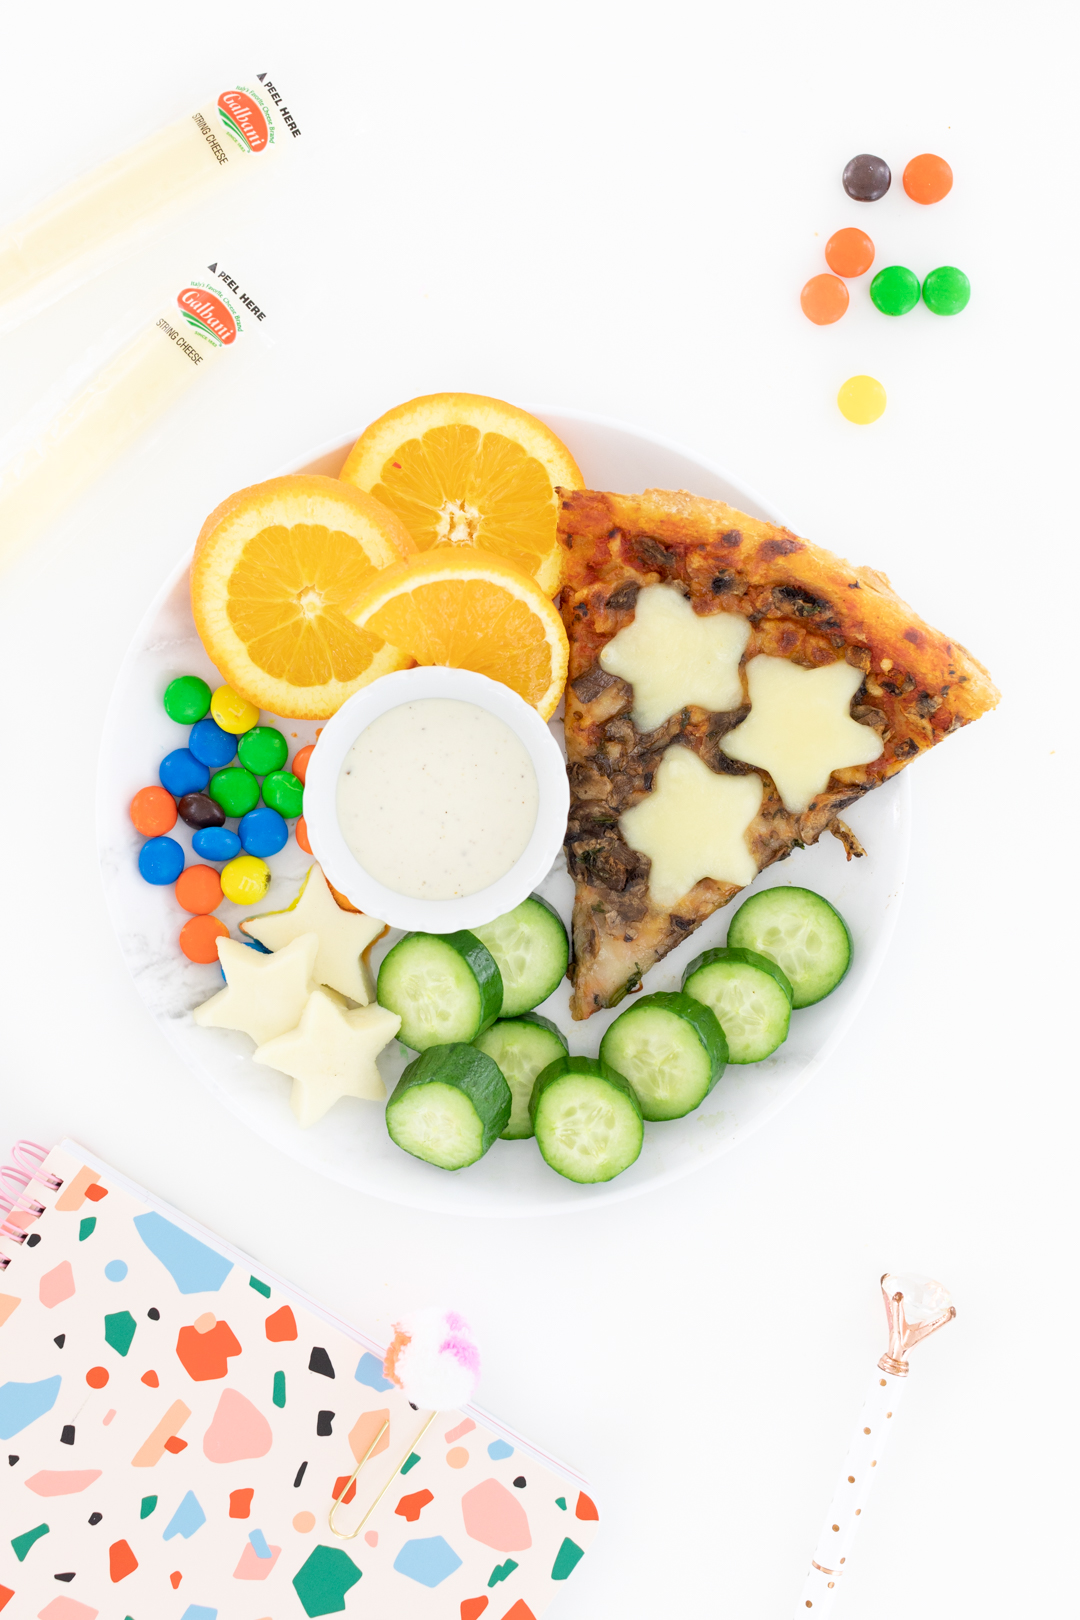 pizza snacks for kids with fruits and candies